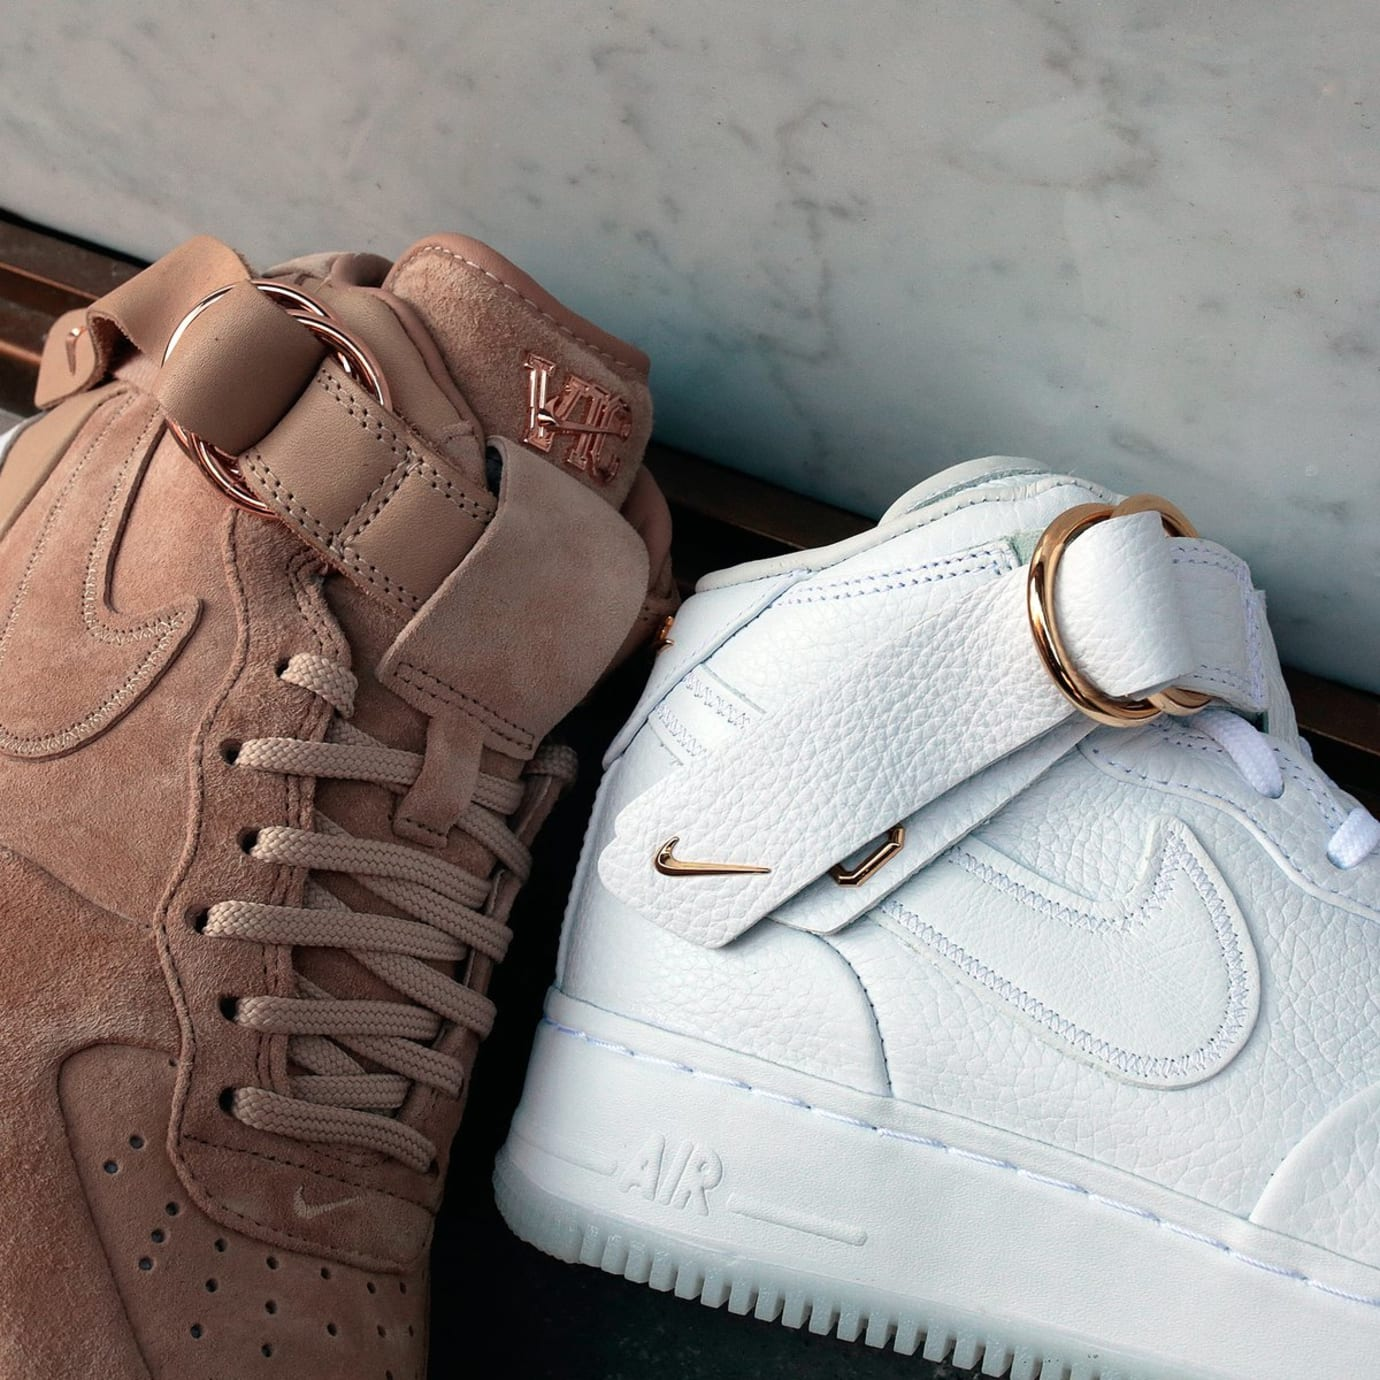 Victor Cruz x Nike Air Force 1 Mid CMFT QS (Tan and White)